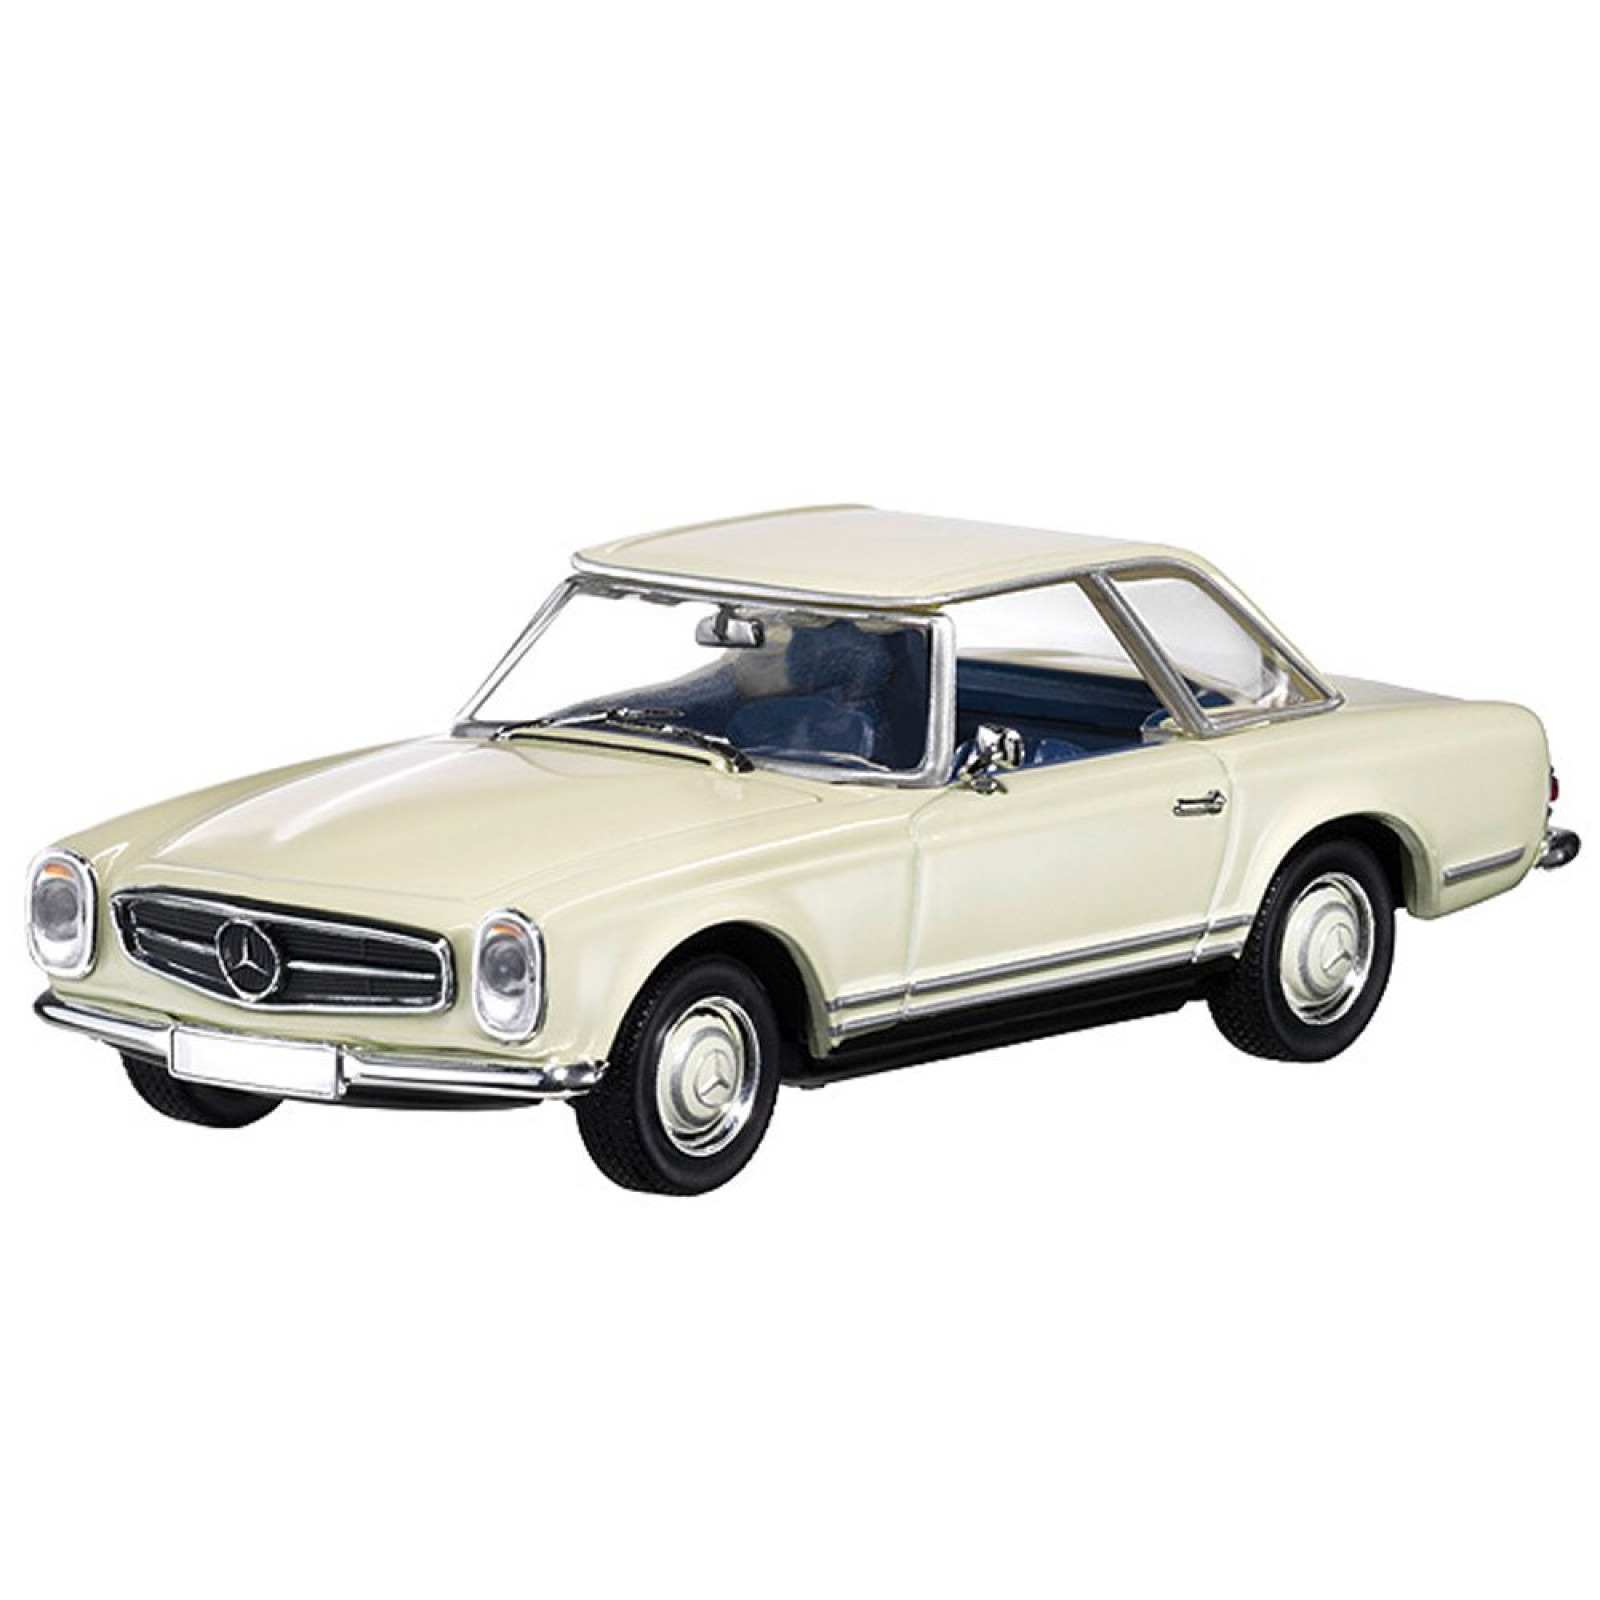 Mercedes benz w113 pagoda 230sl 1 43 scale diecast model for Diecast mercedes benz